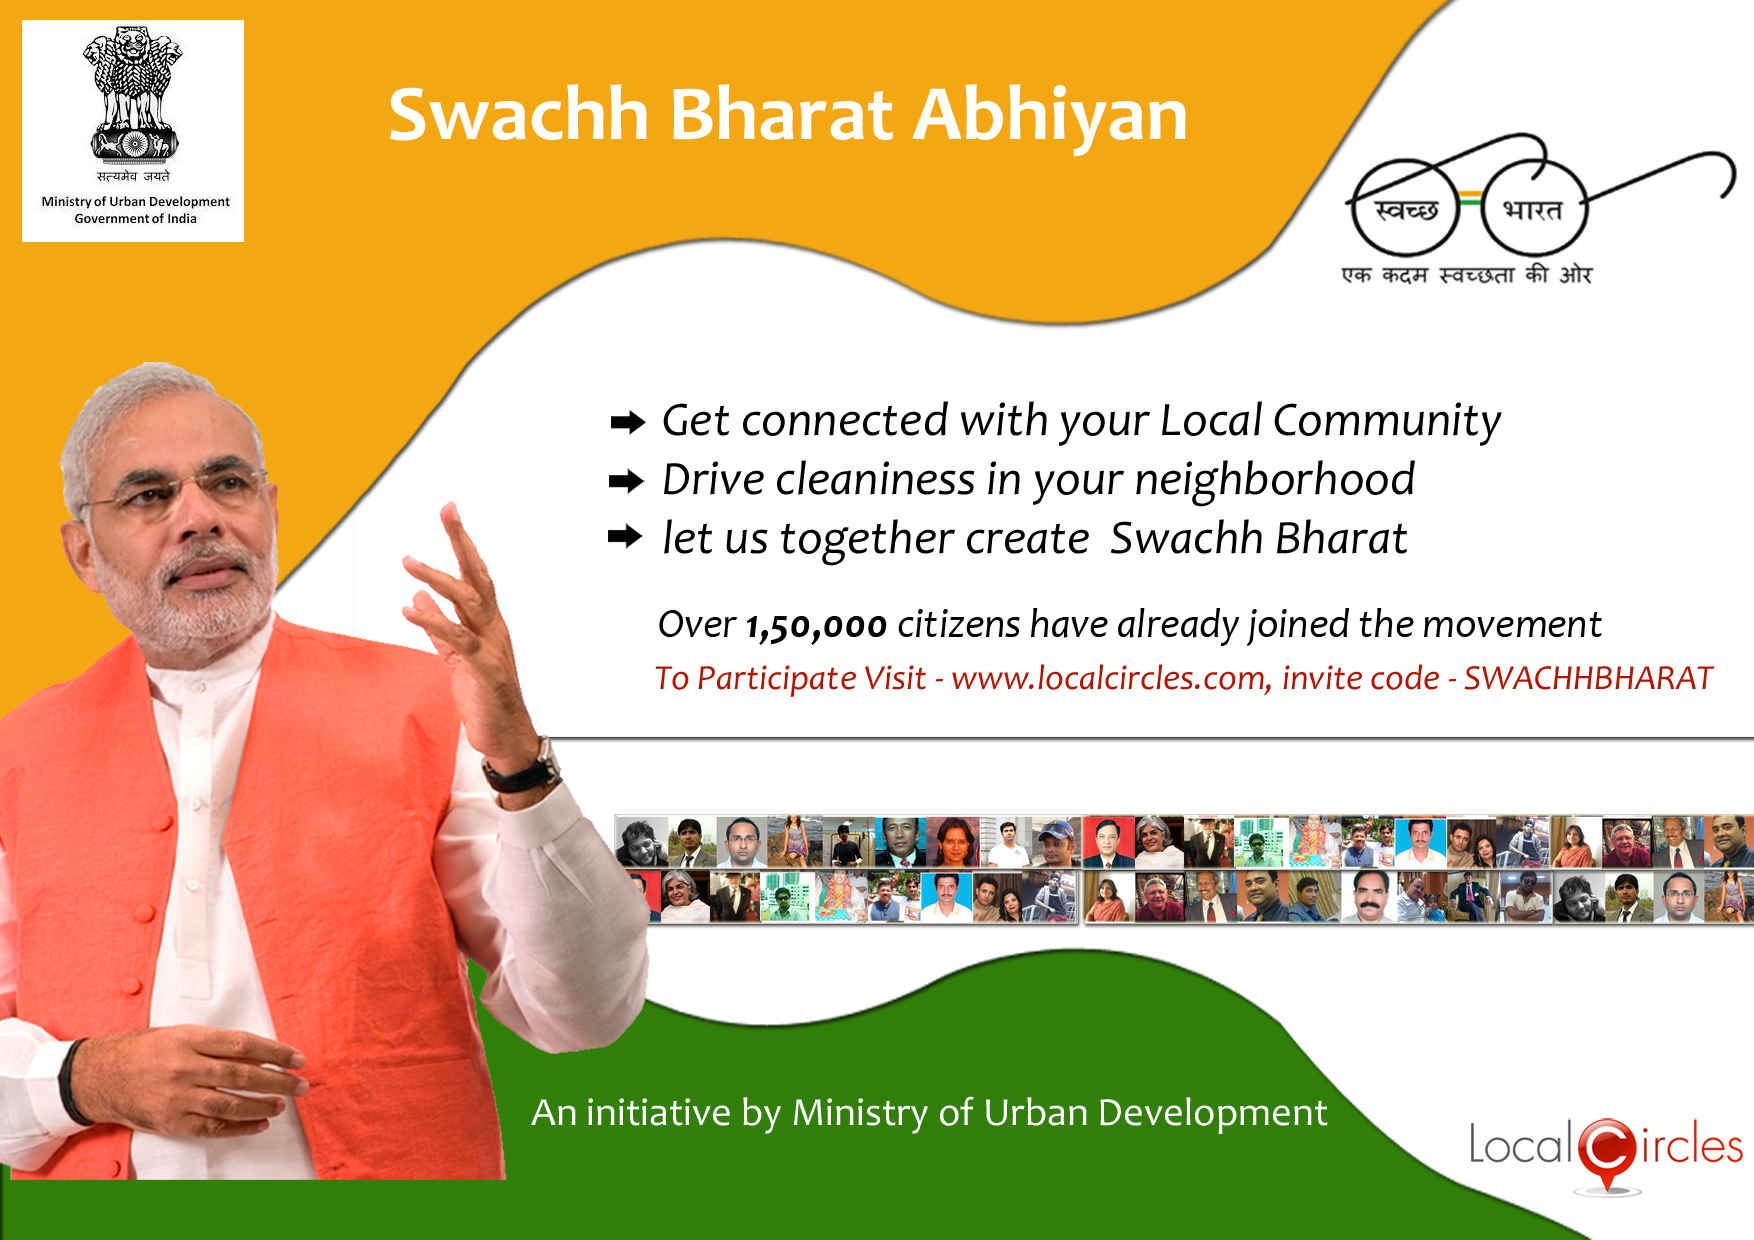 swachh bharat abhiyan was announced by Swachh bharat abhiyan was announced by prime minister of india narendra modi on 15 aug 2014, indian independence day & launched on 2 oct 2014, gandhi jayanti.